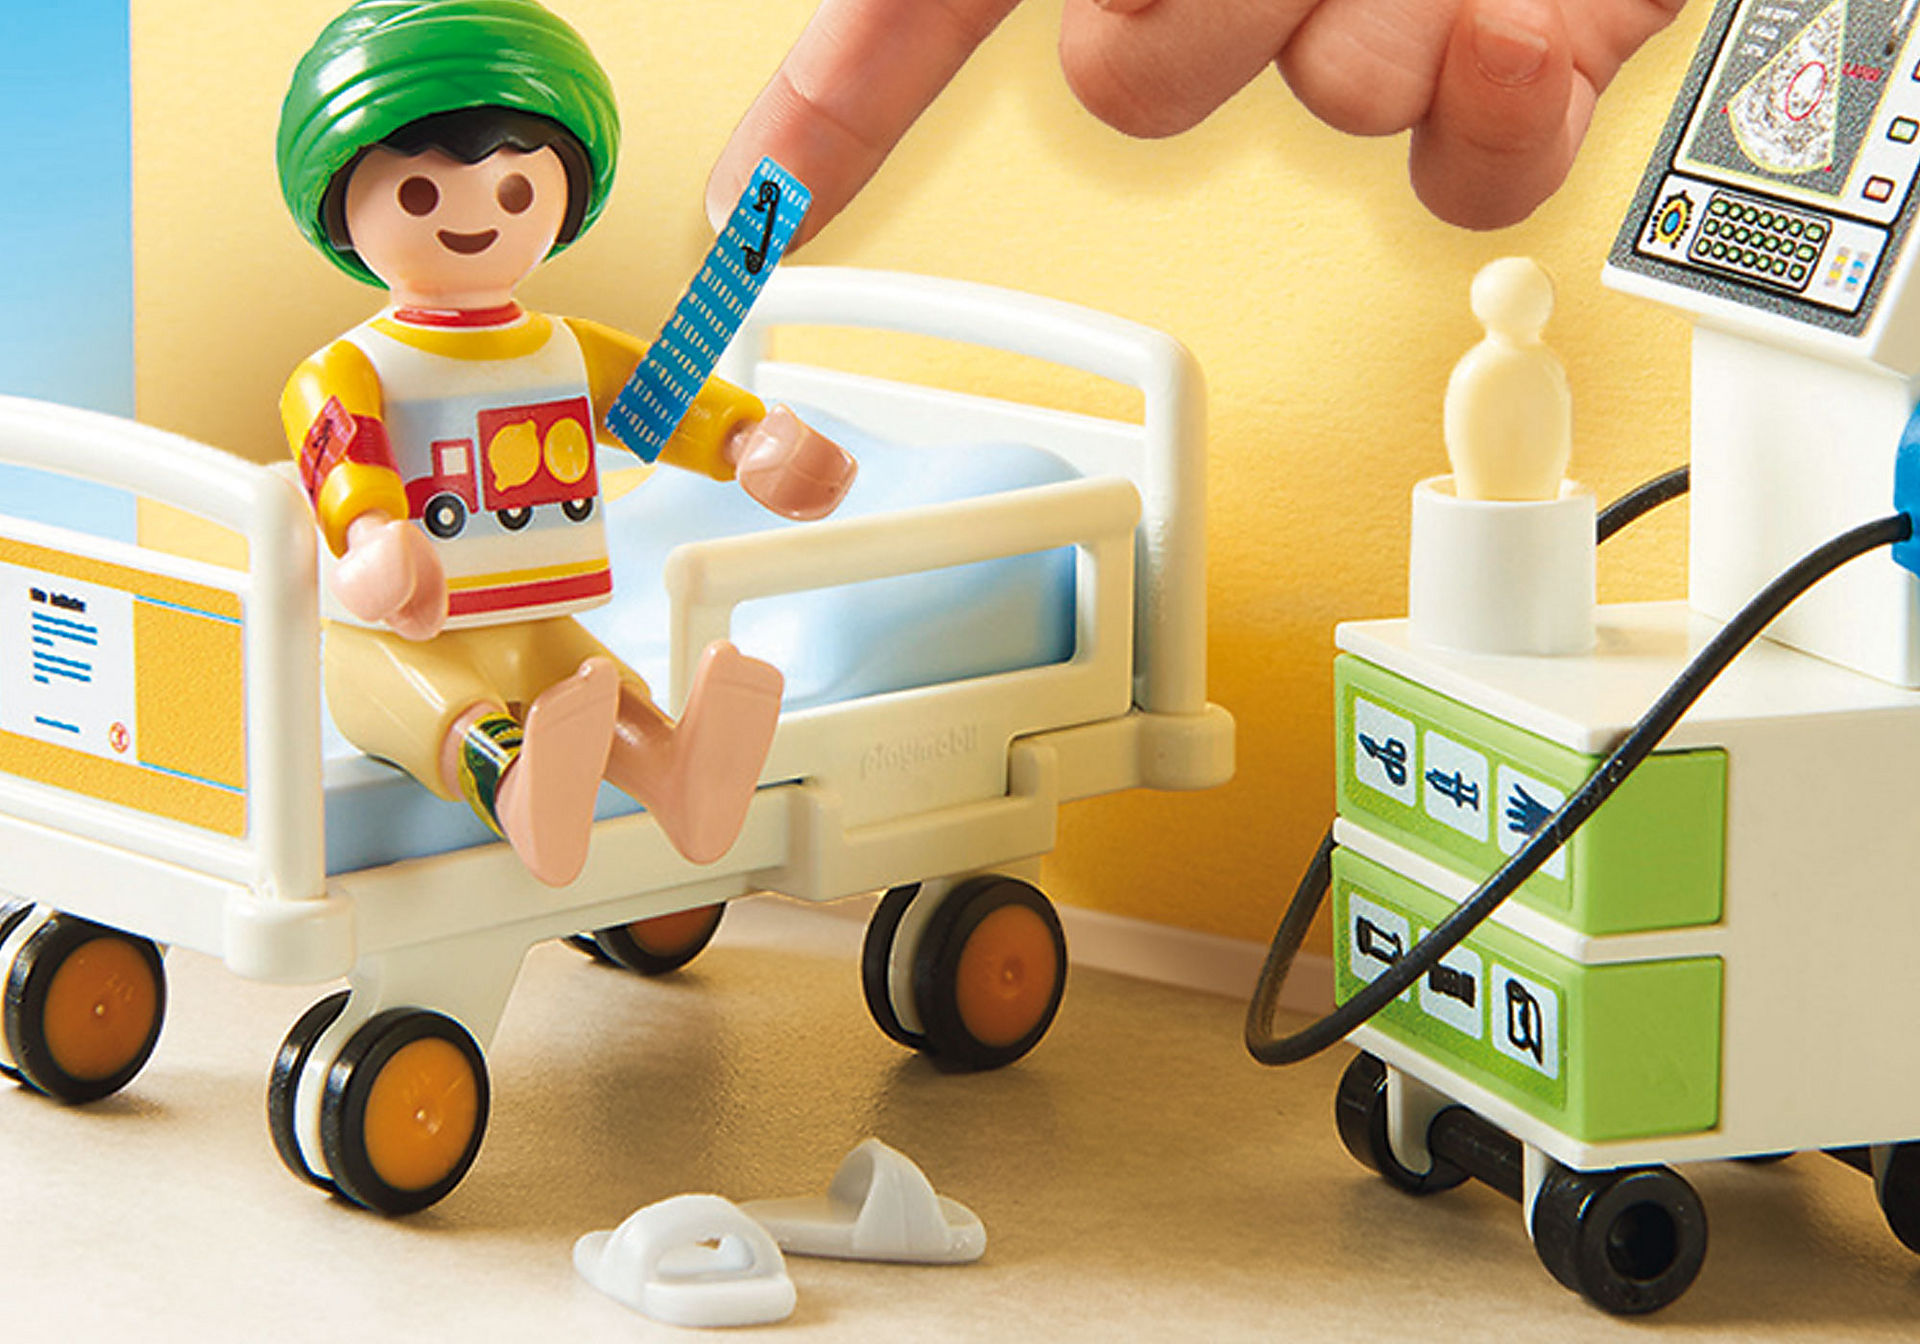 http://media.playmobil.com/i/playmobil/70192_product_extra1/Children's Hospital Room